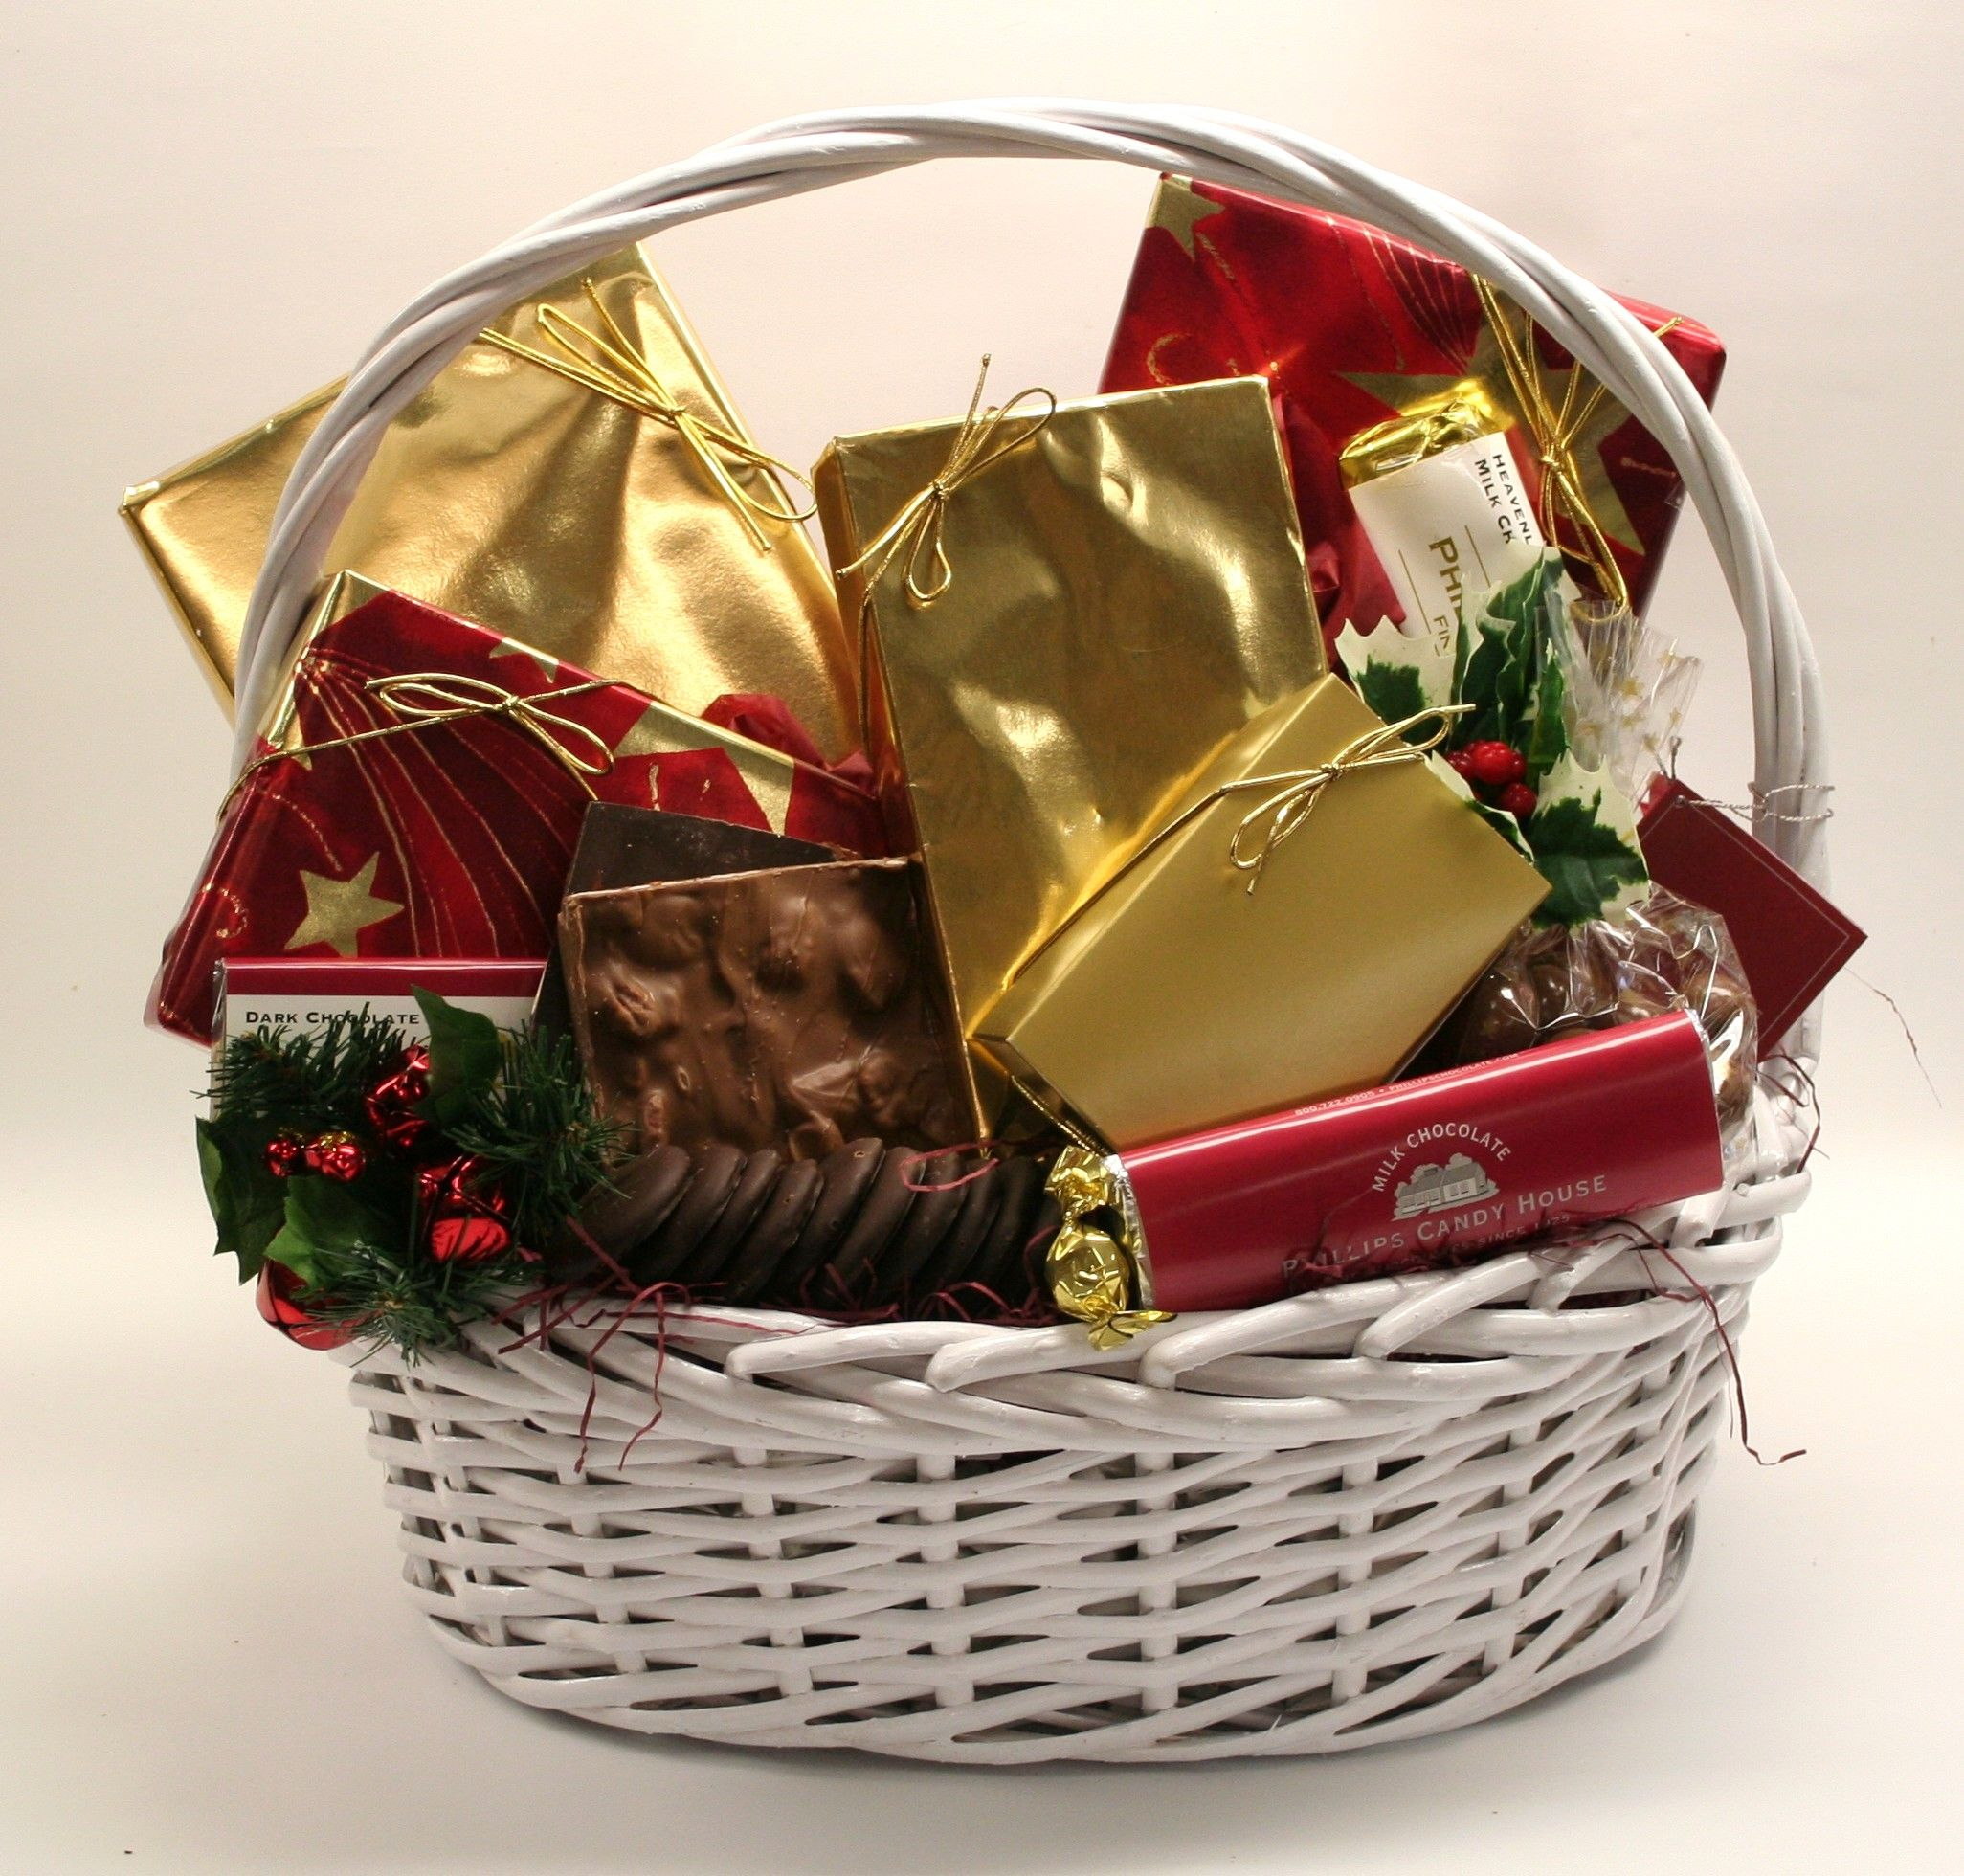 Chocolate Indulgence: Chocolate lovers rejoice. Our grand basket ...